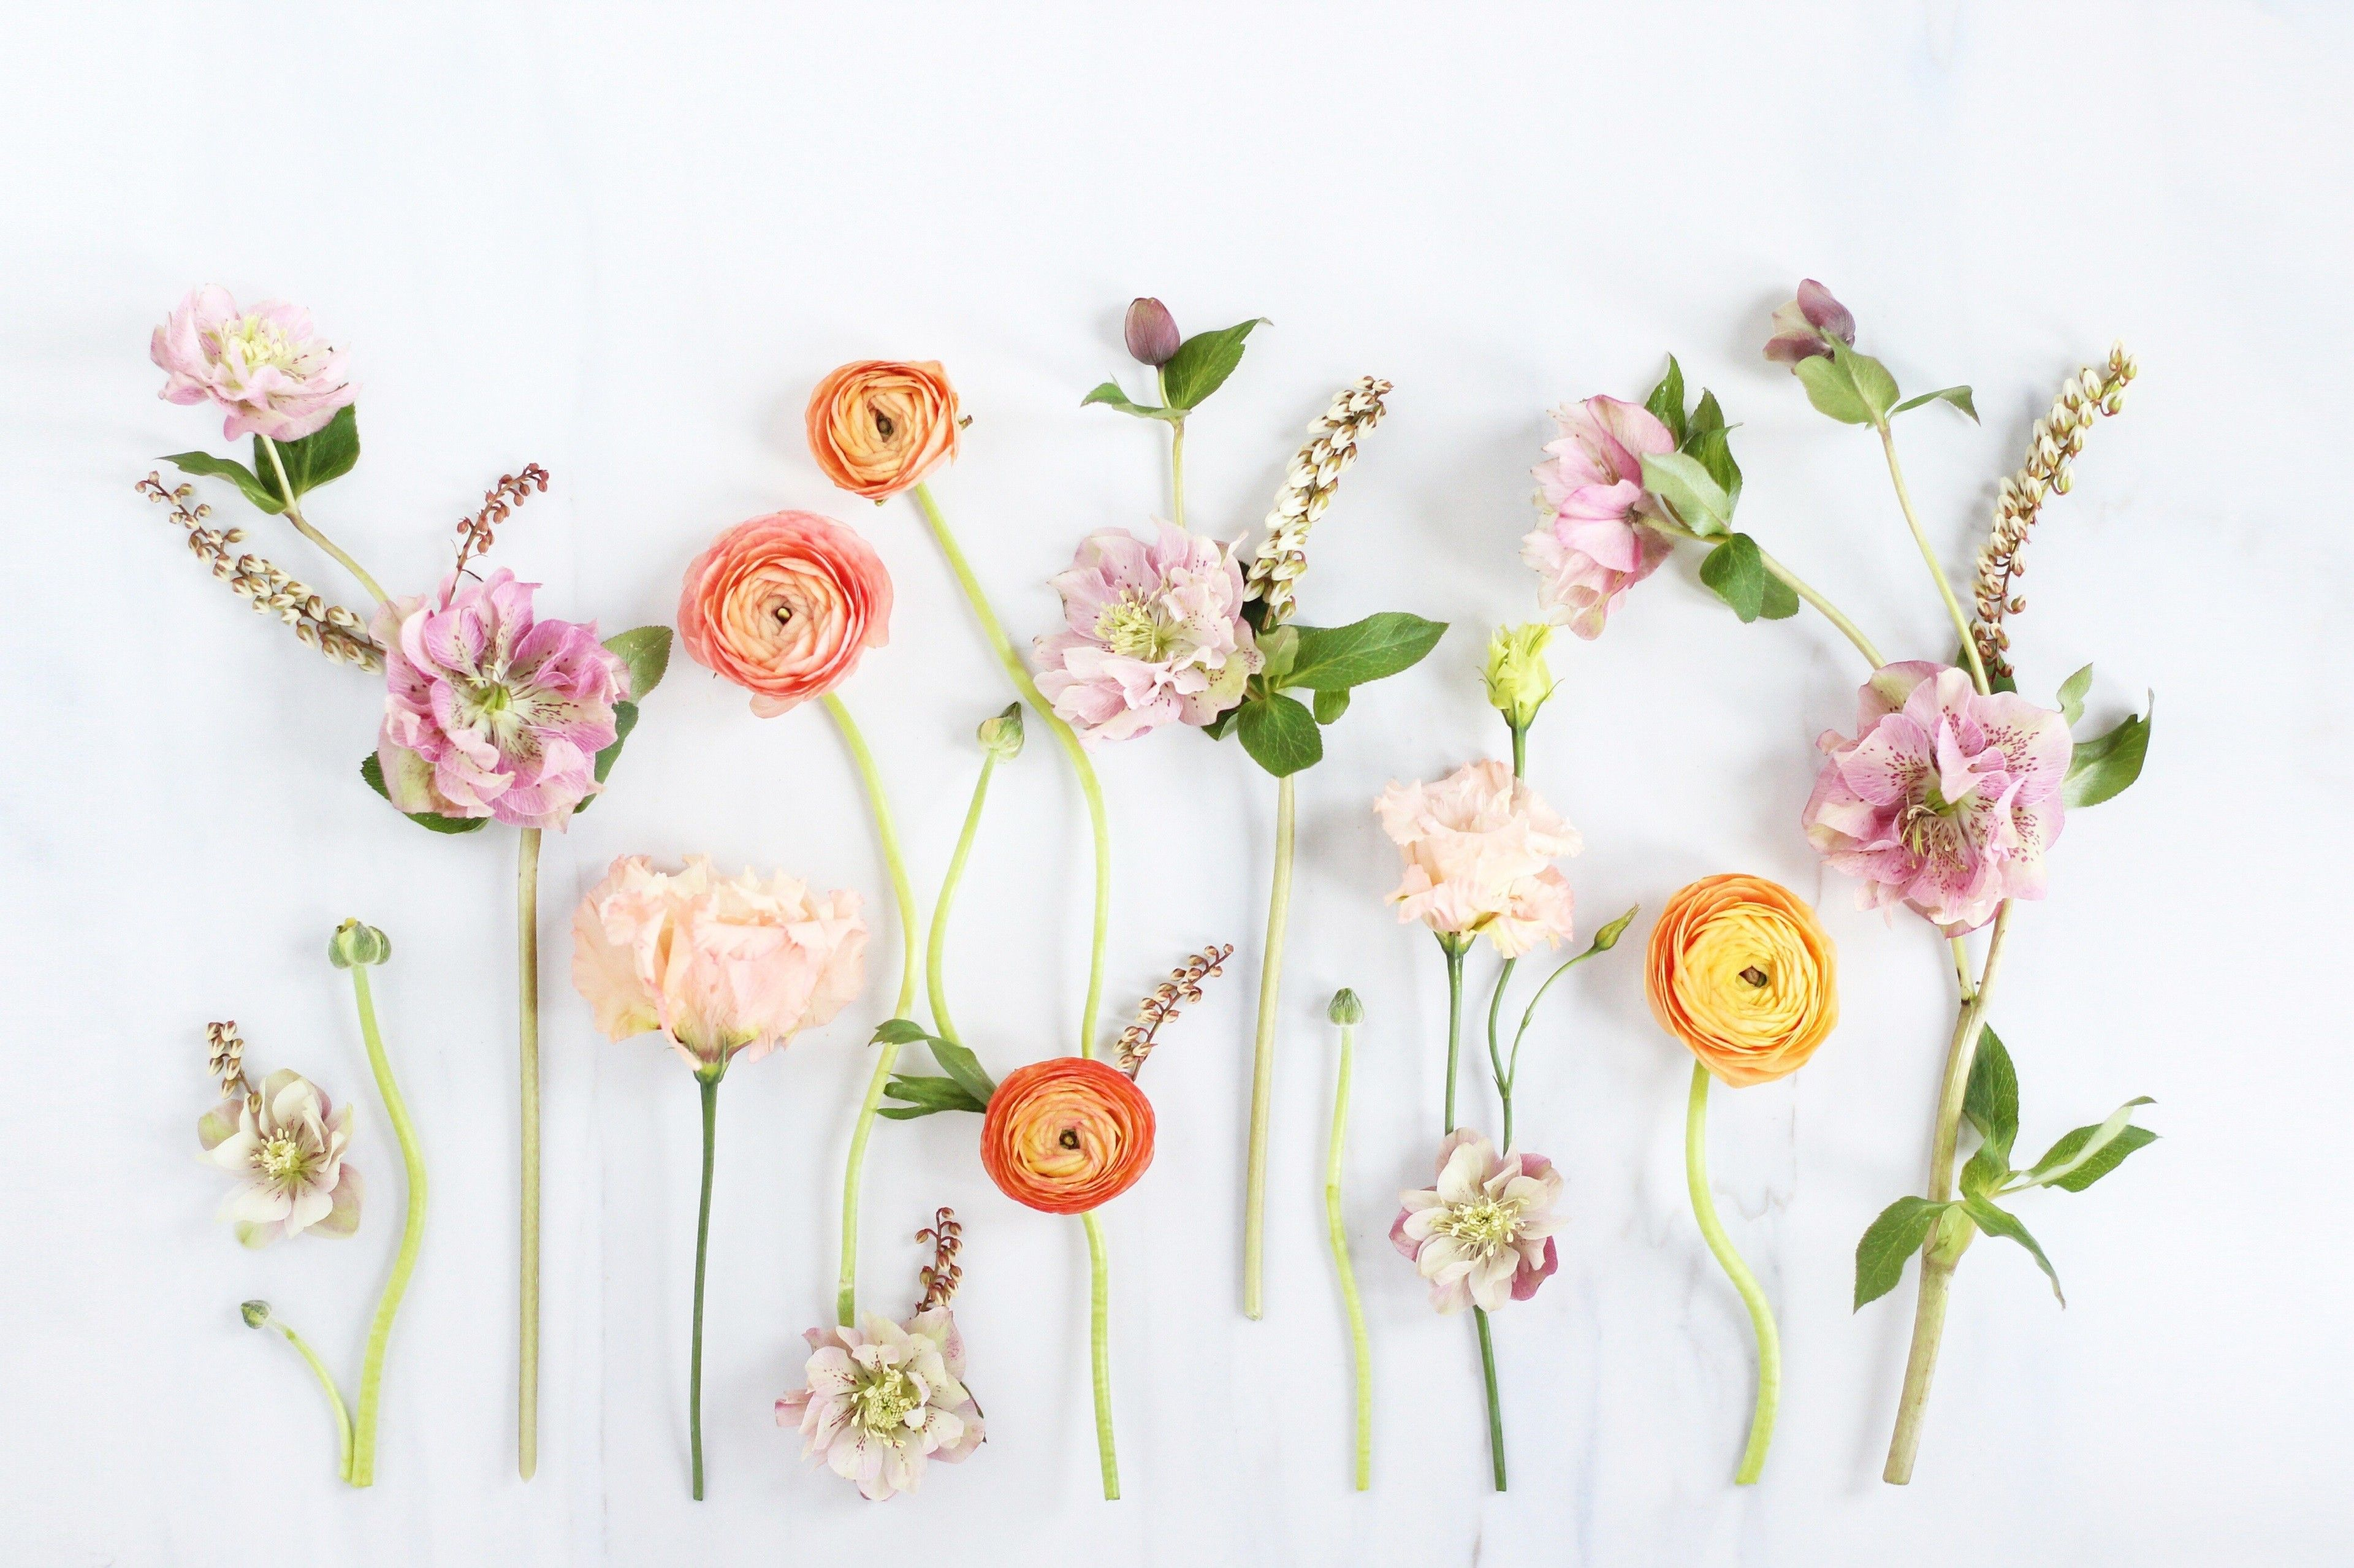 Simple Flowers On The Wall Hd Spring Wallpaper Beautiful Flowers And Floral Wallpaper Desktop Flower Desktop Wallpaper Computer Wallpaper Desktop Wallpapers